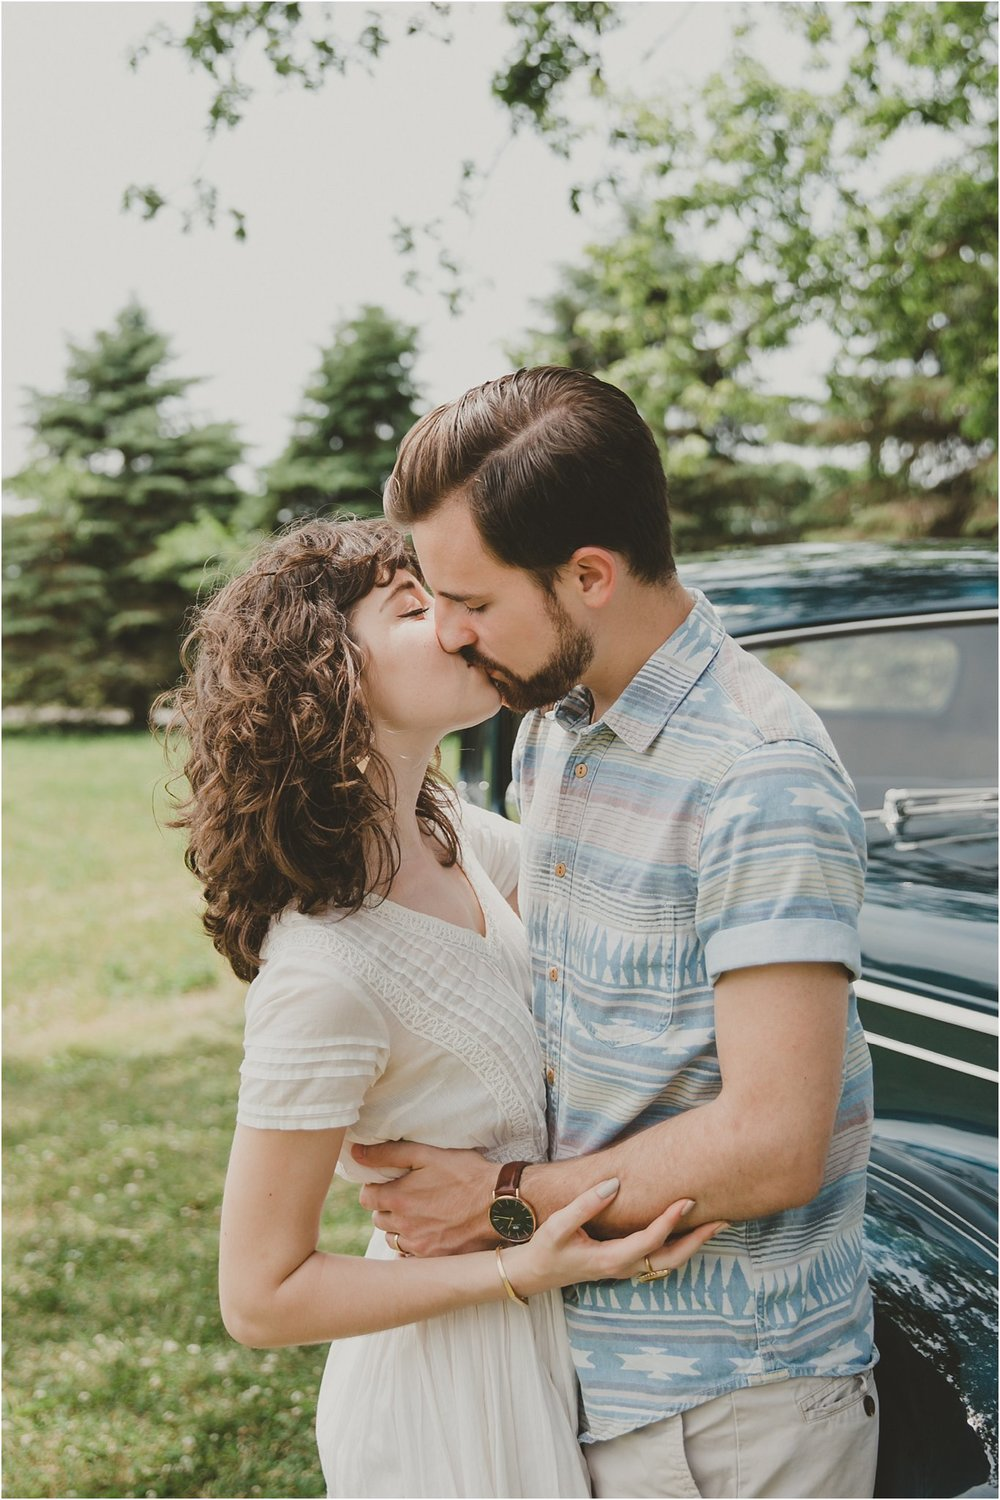 PattengalePhotography_Indiana_Backyard_Wedding_Reception_Boho_VintageCar_Hudson_classic_elegant_smalltown_intimate_Stephen&Me_0029.jpg